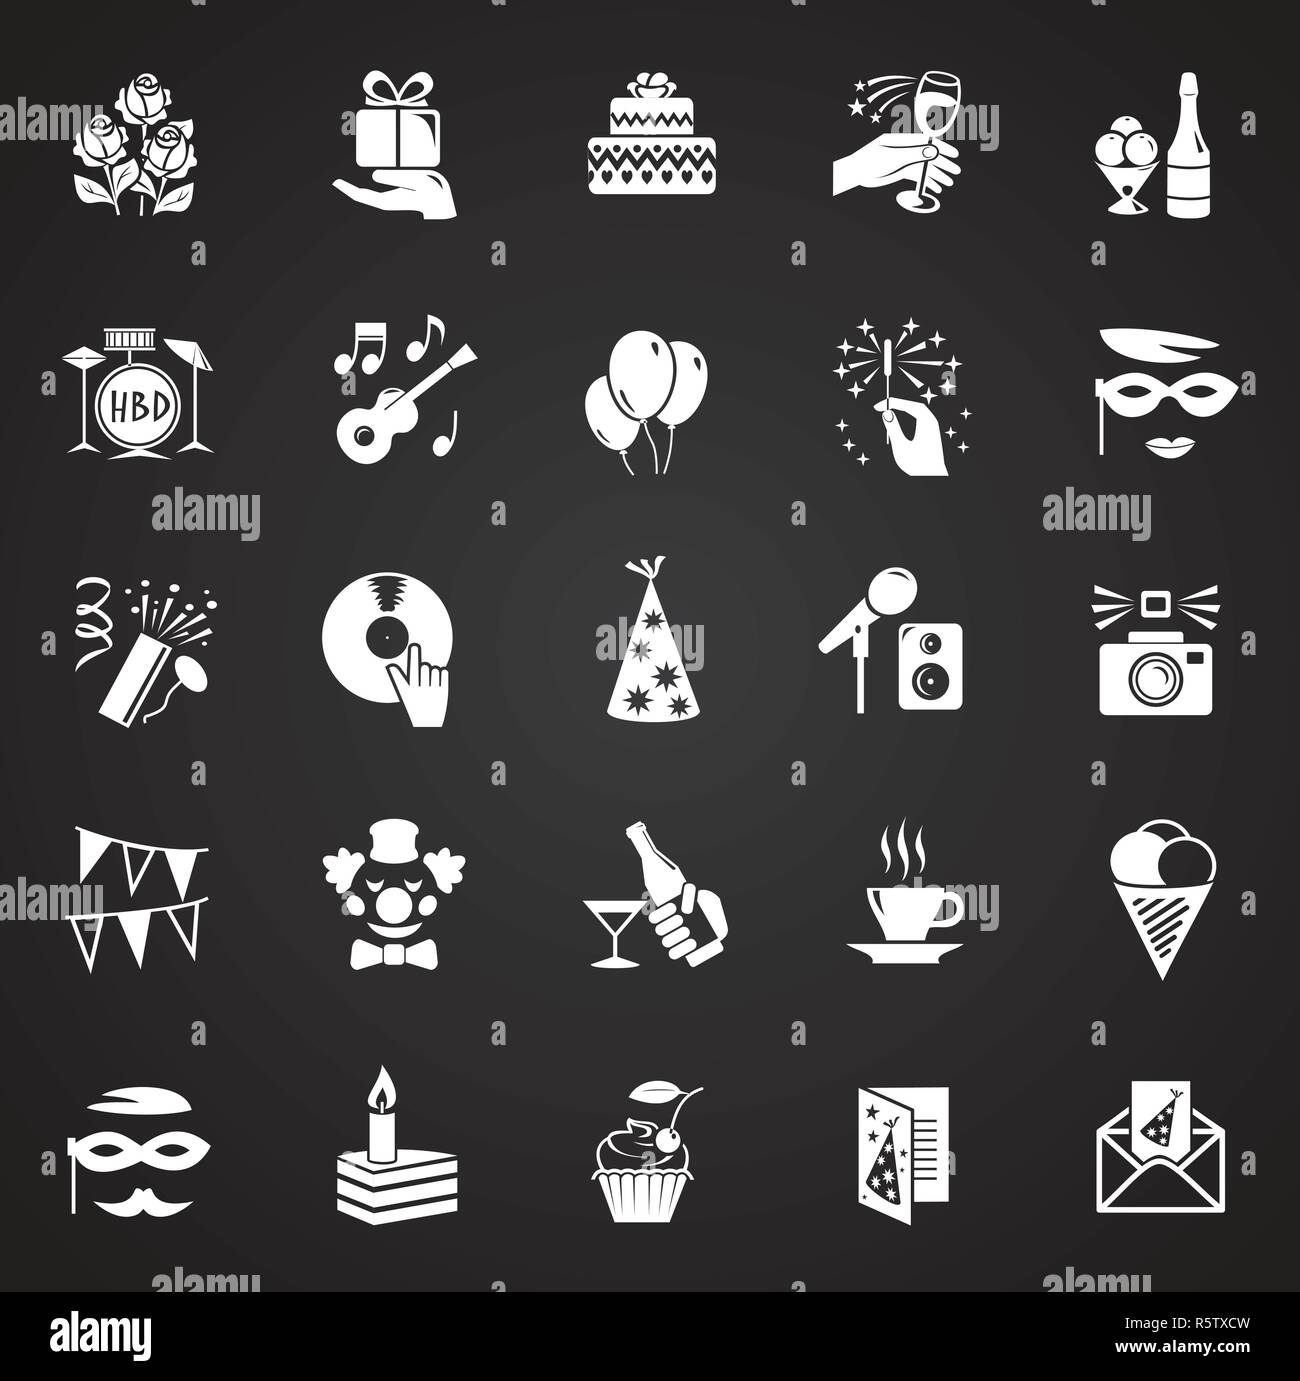 Birthday Party Icons Set On Black Background For Graphic And Web Design Modern Simple Vector Sign Internet Concept Trendy Symbol For Website Design Web Button Or Mobile App Stock Vector Image,Low Cost Minimalist House Design Interior